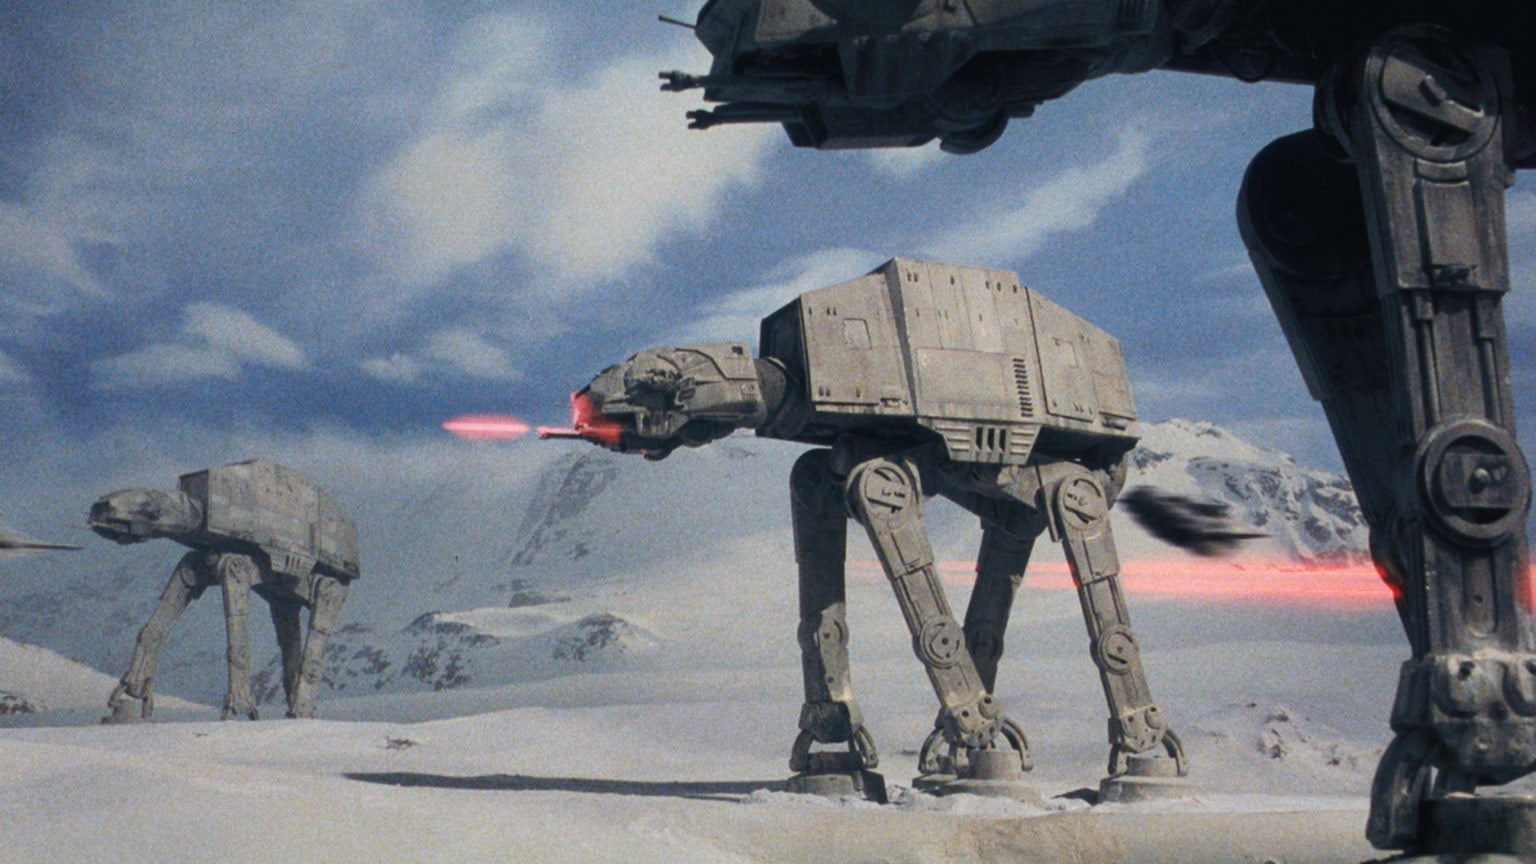 Empire at 40 | Snow Walkers, Stop Motion, and Dumpster Lids: An Oral History of the Battle of Hoth